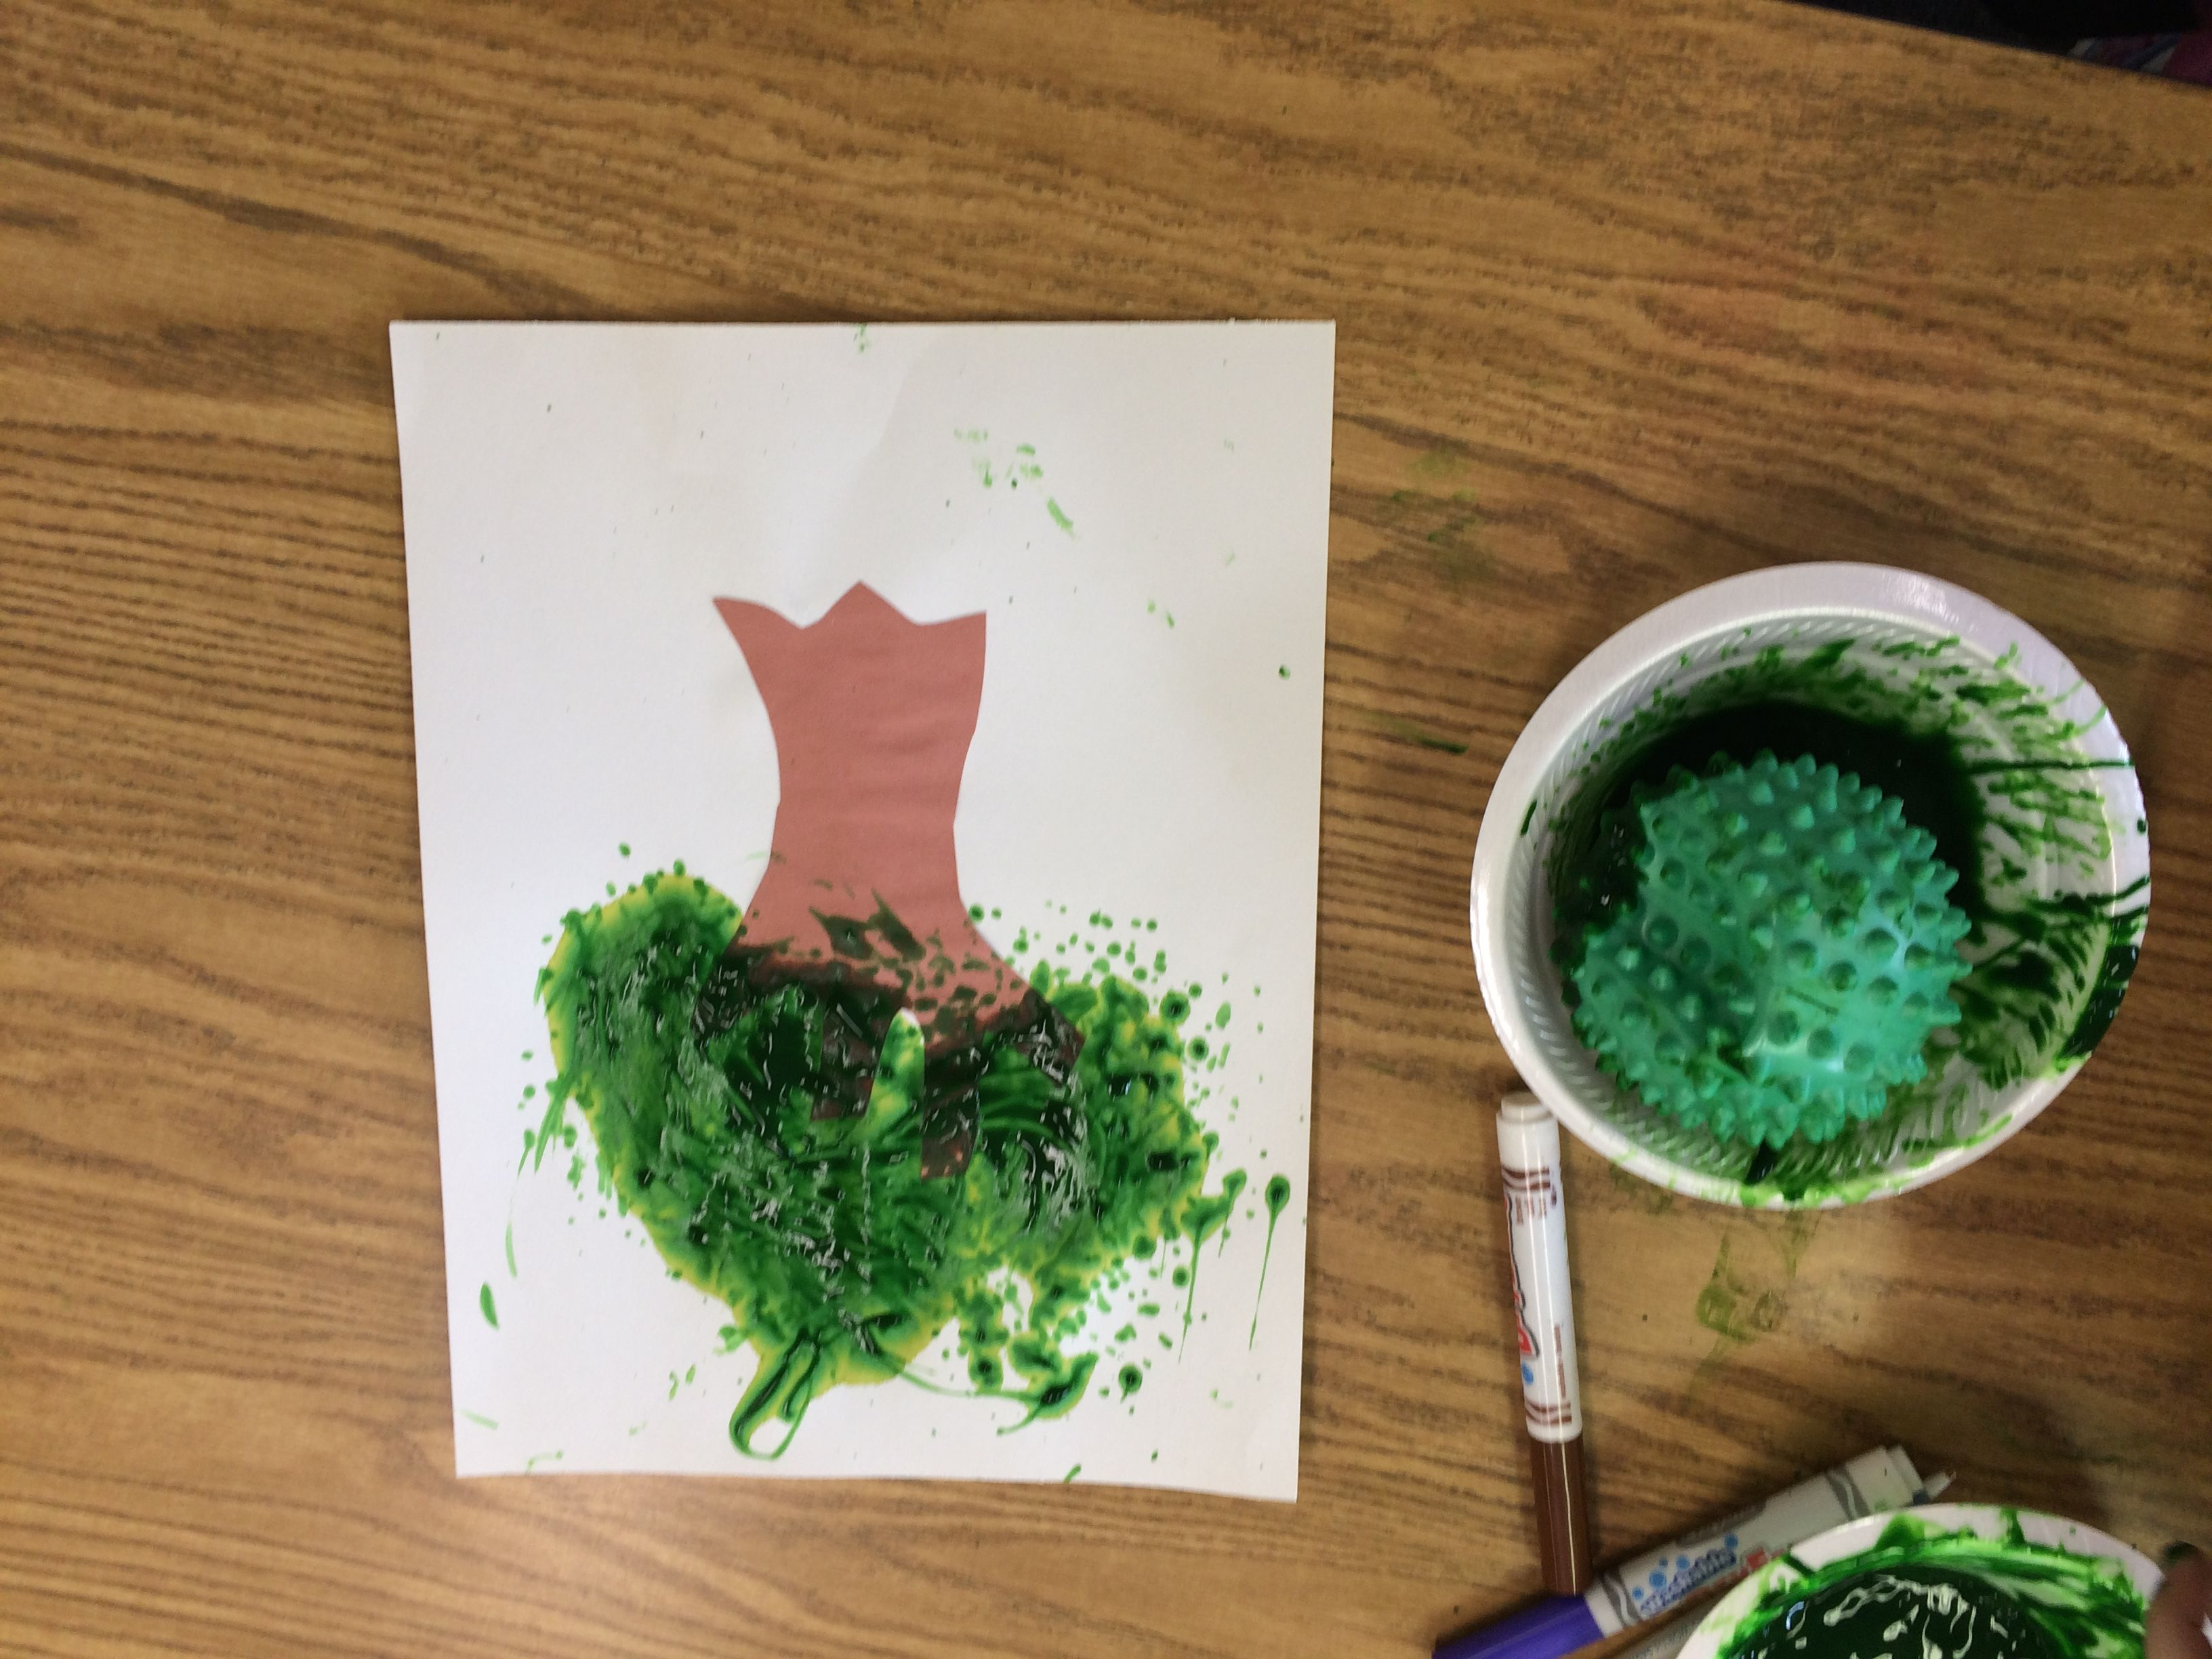 Tree Painting With Fidget Ball